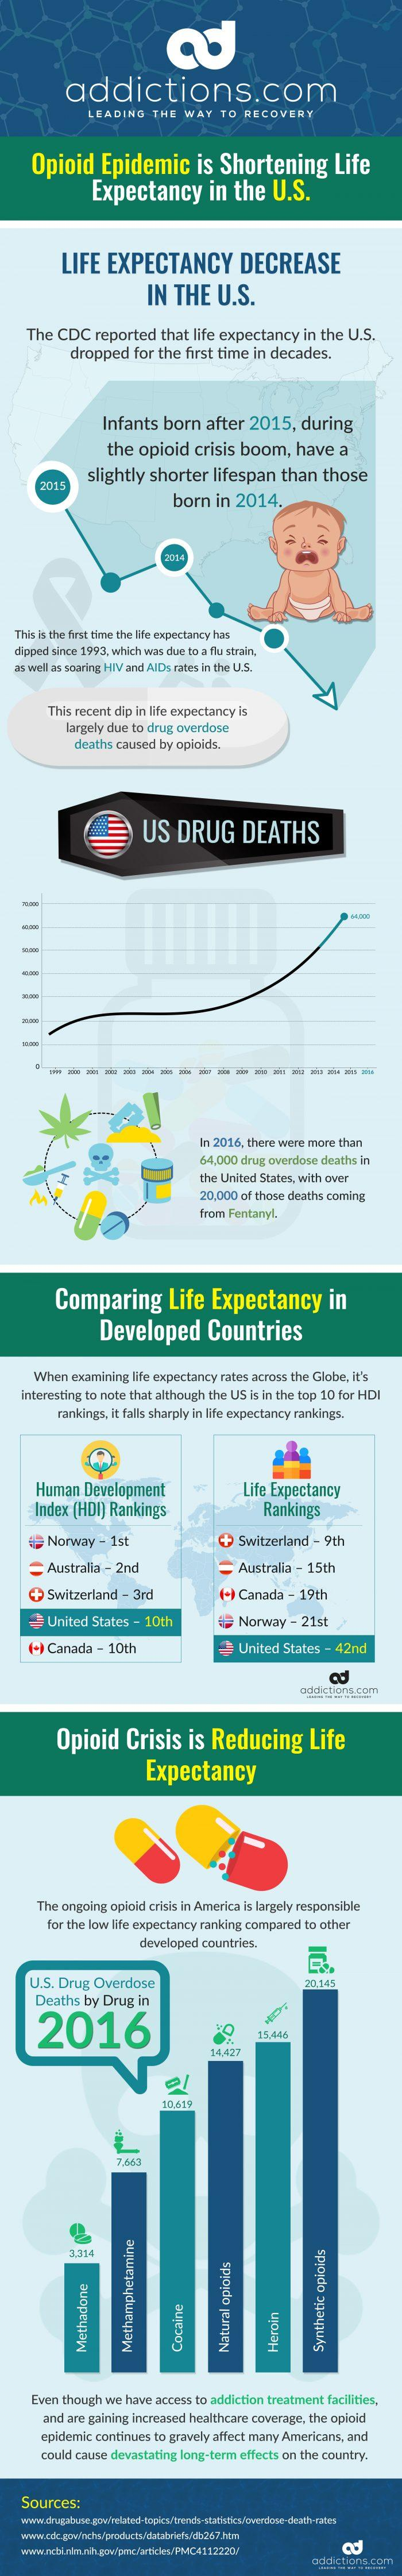 factors contributing to low health expectancy in developed countries